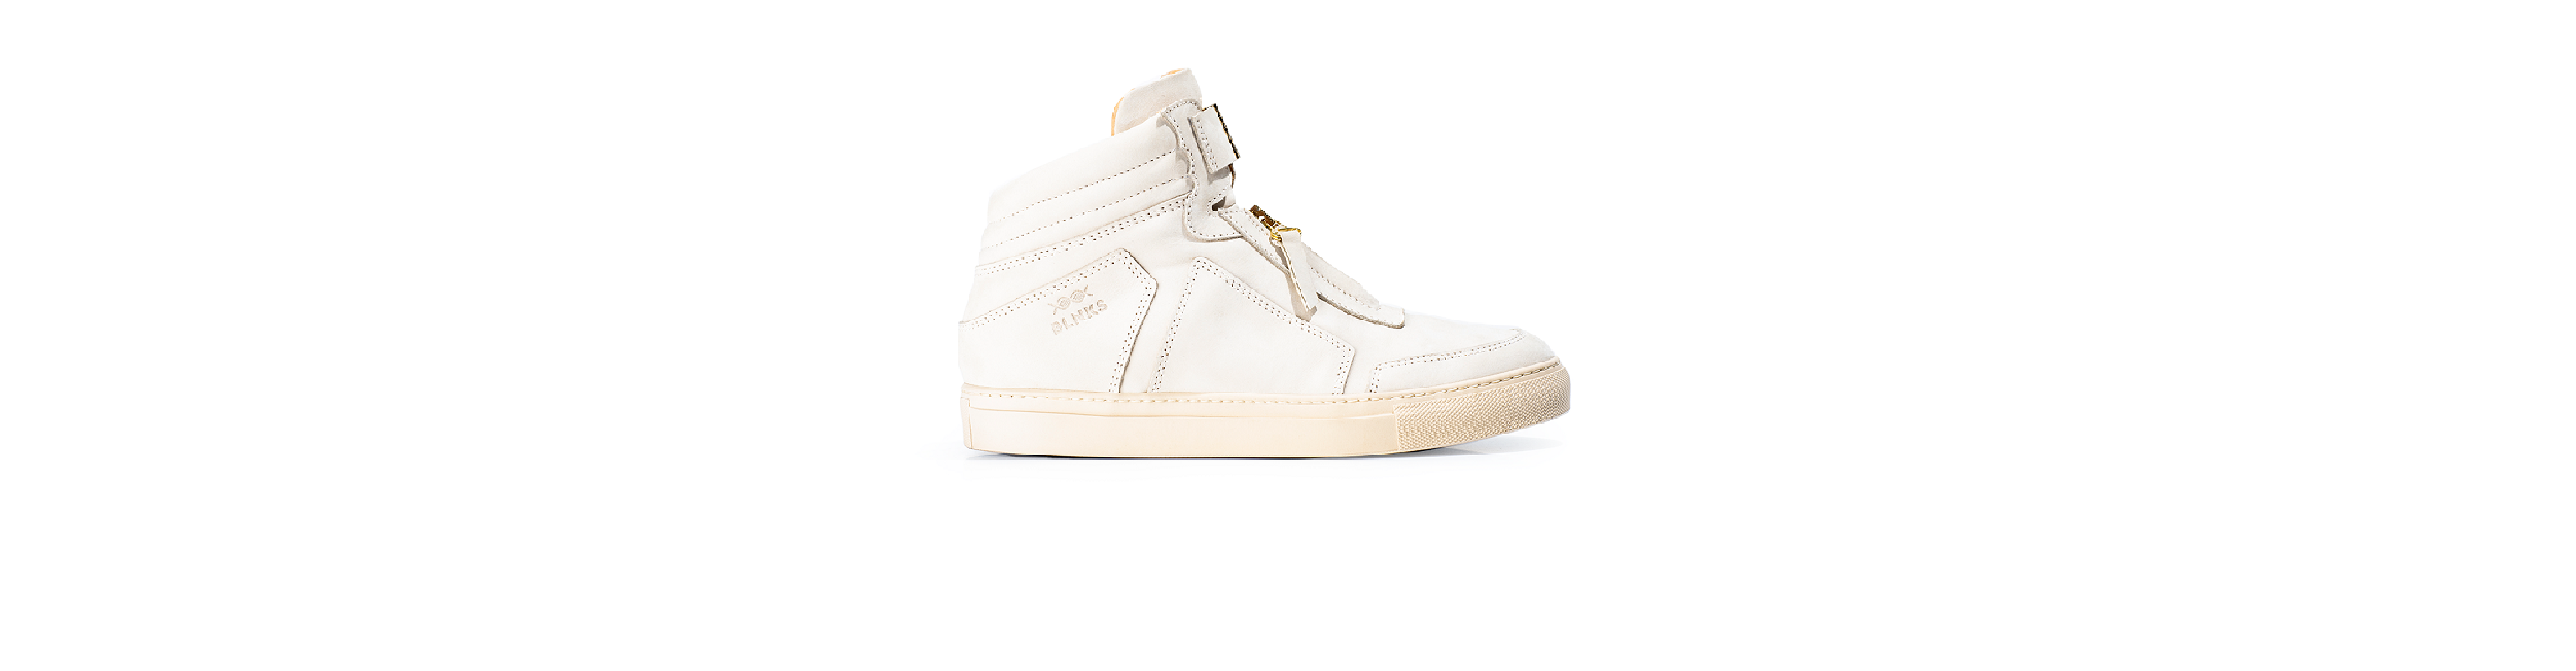 8015 High Top Zipper Sneaker - Sandstorm